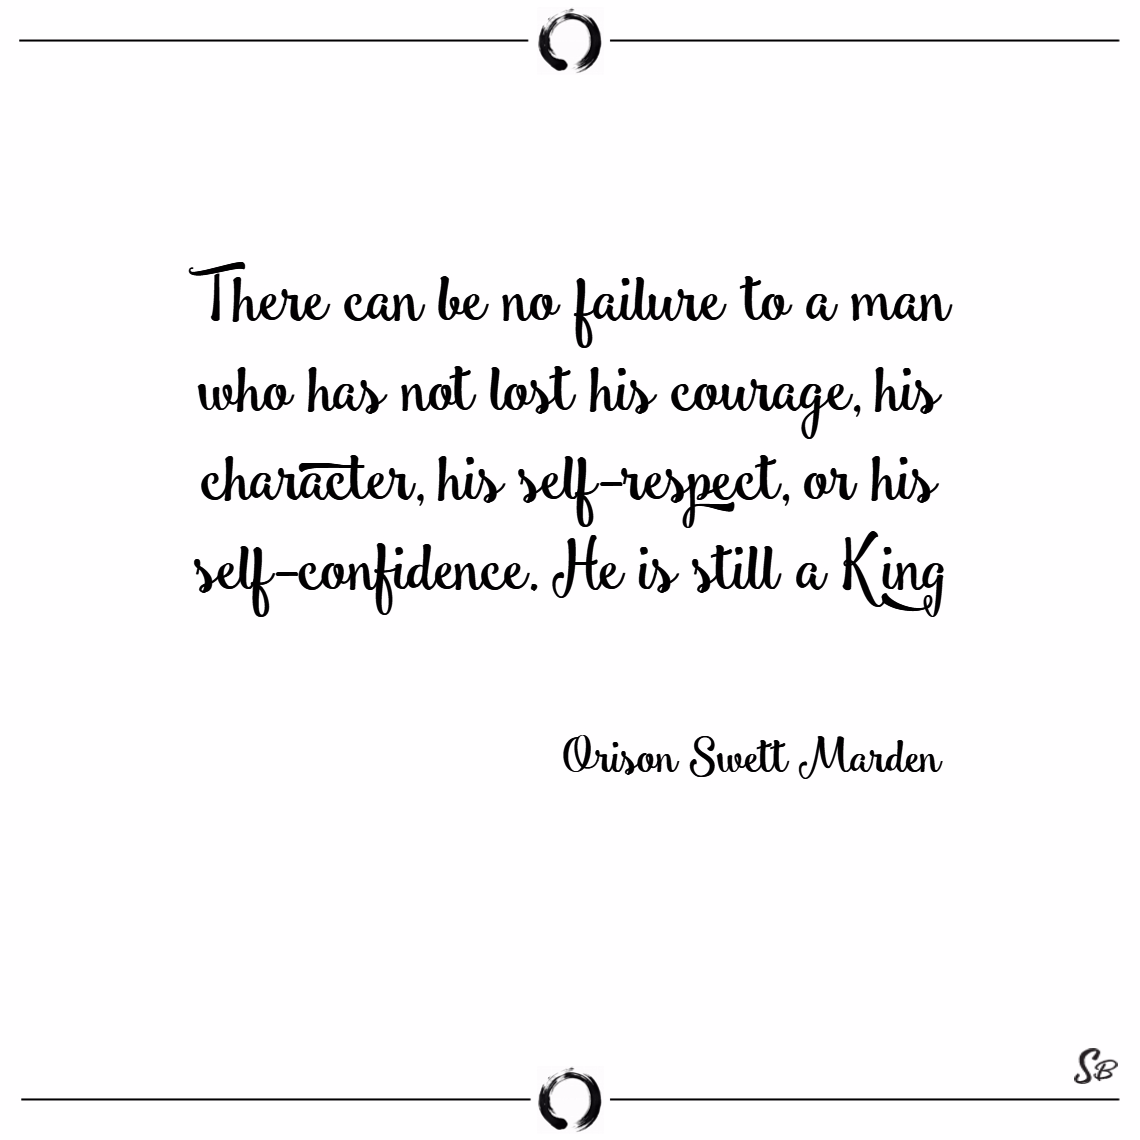 There can be no failure to a man who has not lost his courage, his character, his self respect, or his self confidence. he is still a king. – orison swett marden